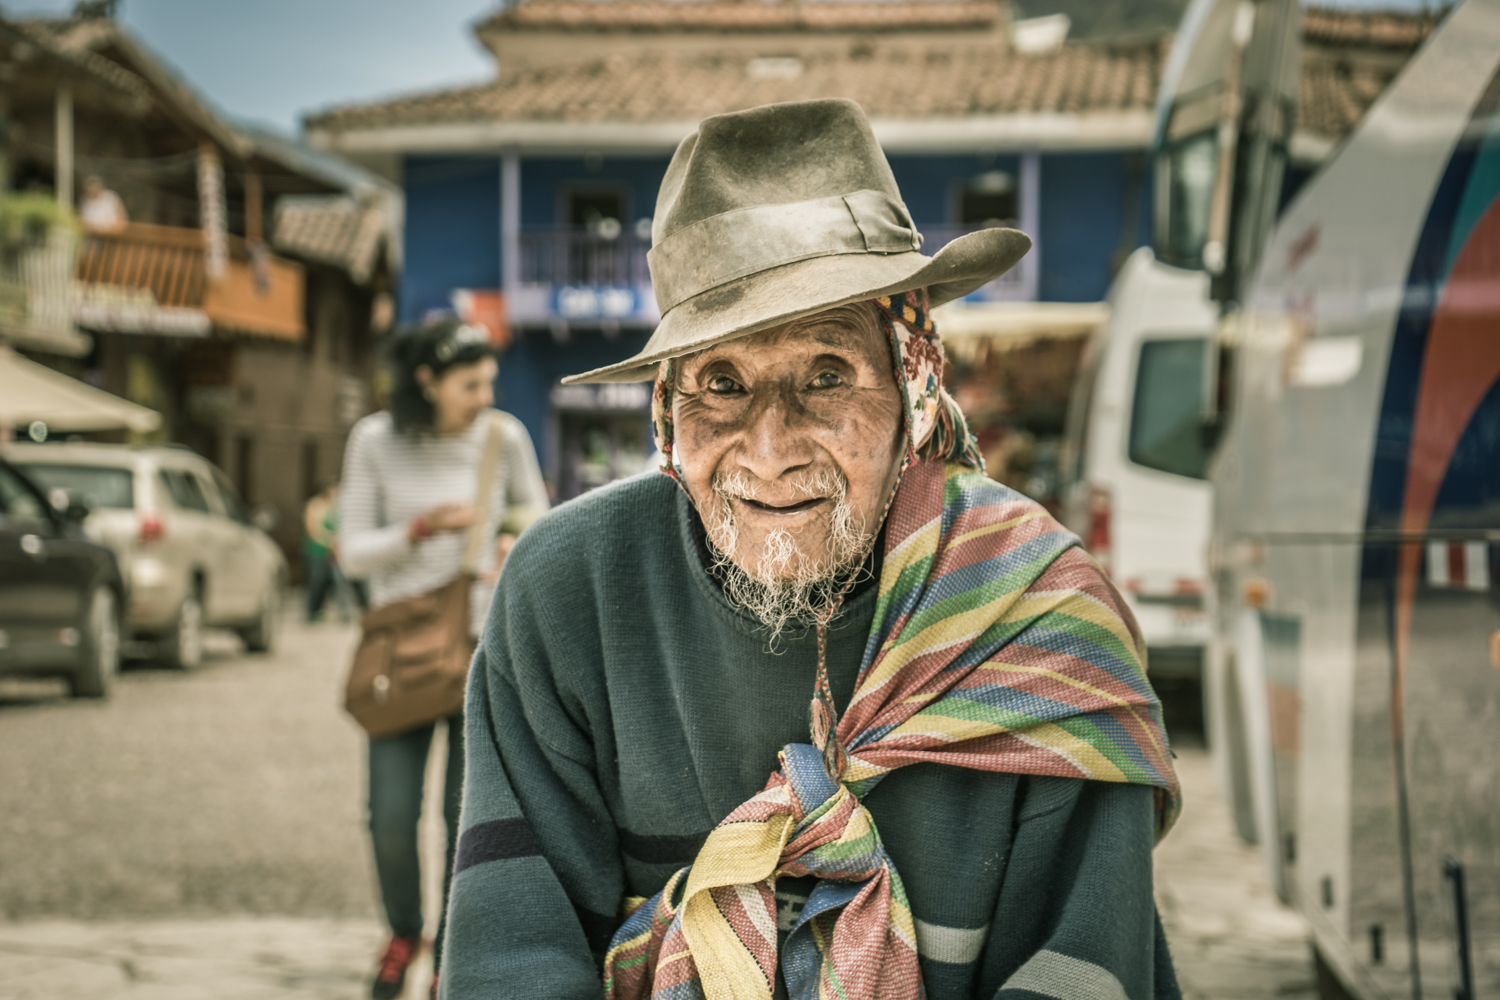 An Old Man from Pisac (Walter Coraza Morveli)